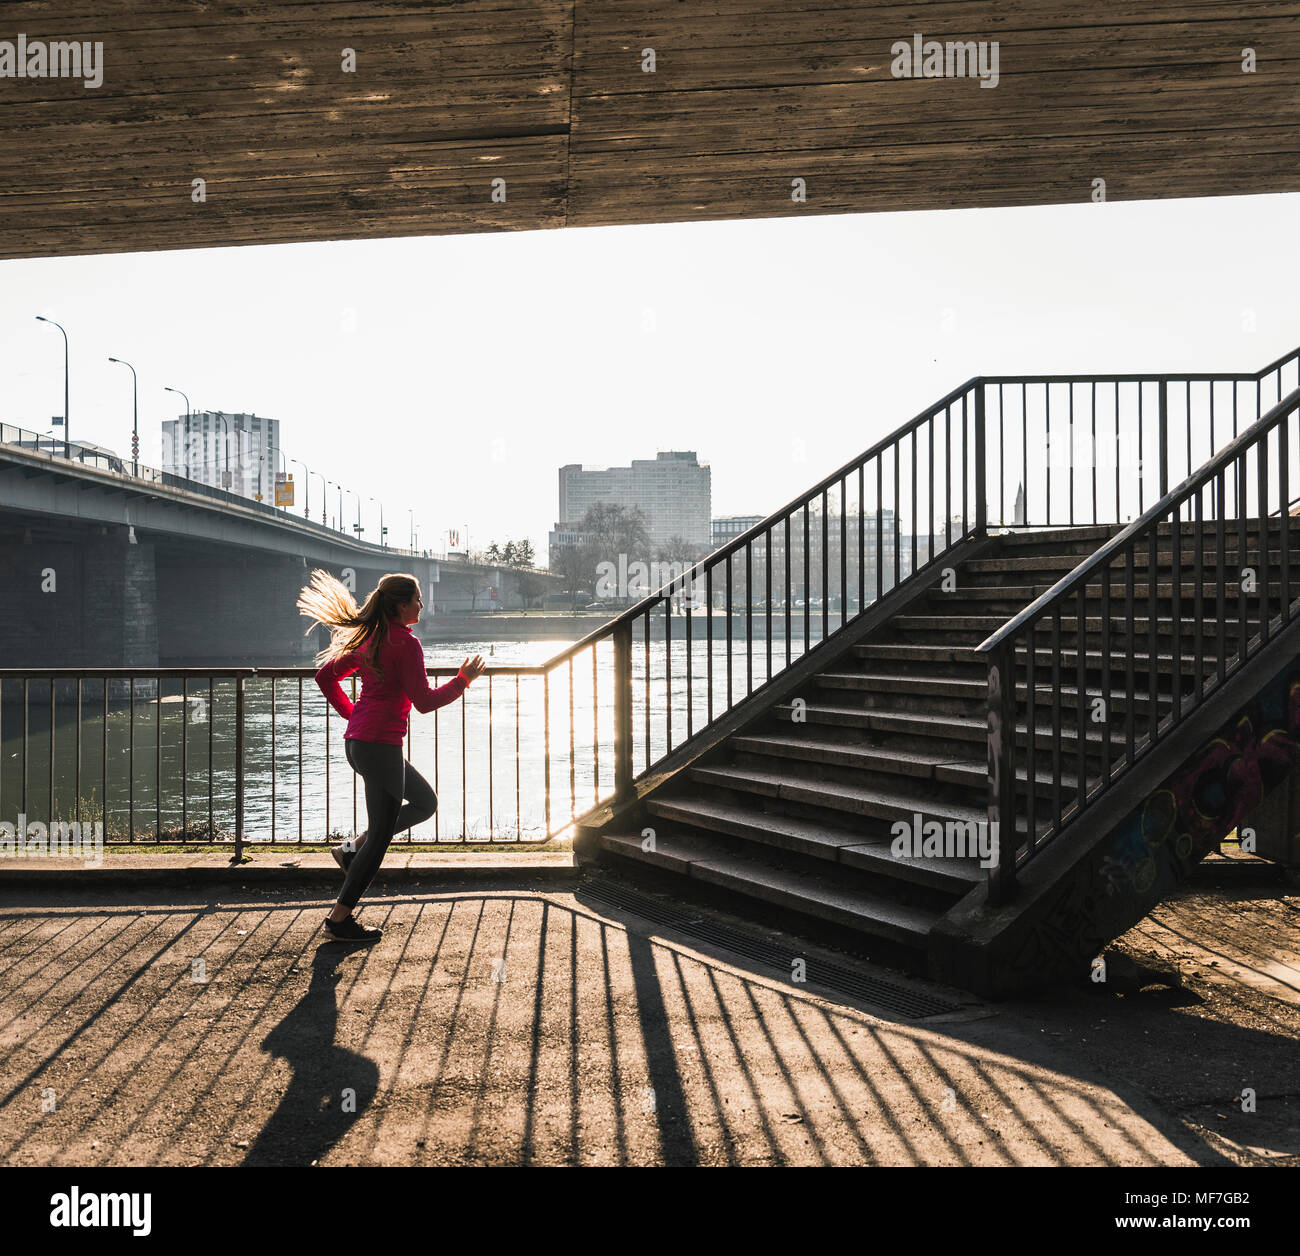 Young woman running towards stairs at a river - Stock Image